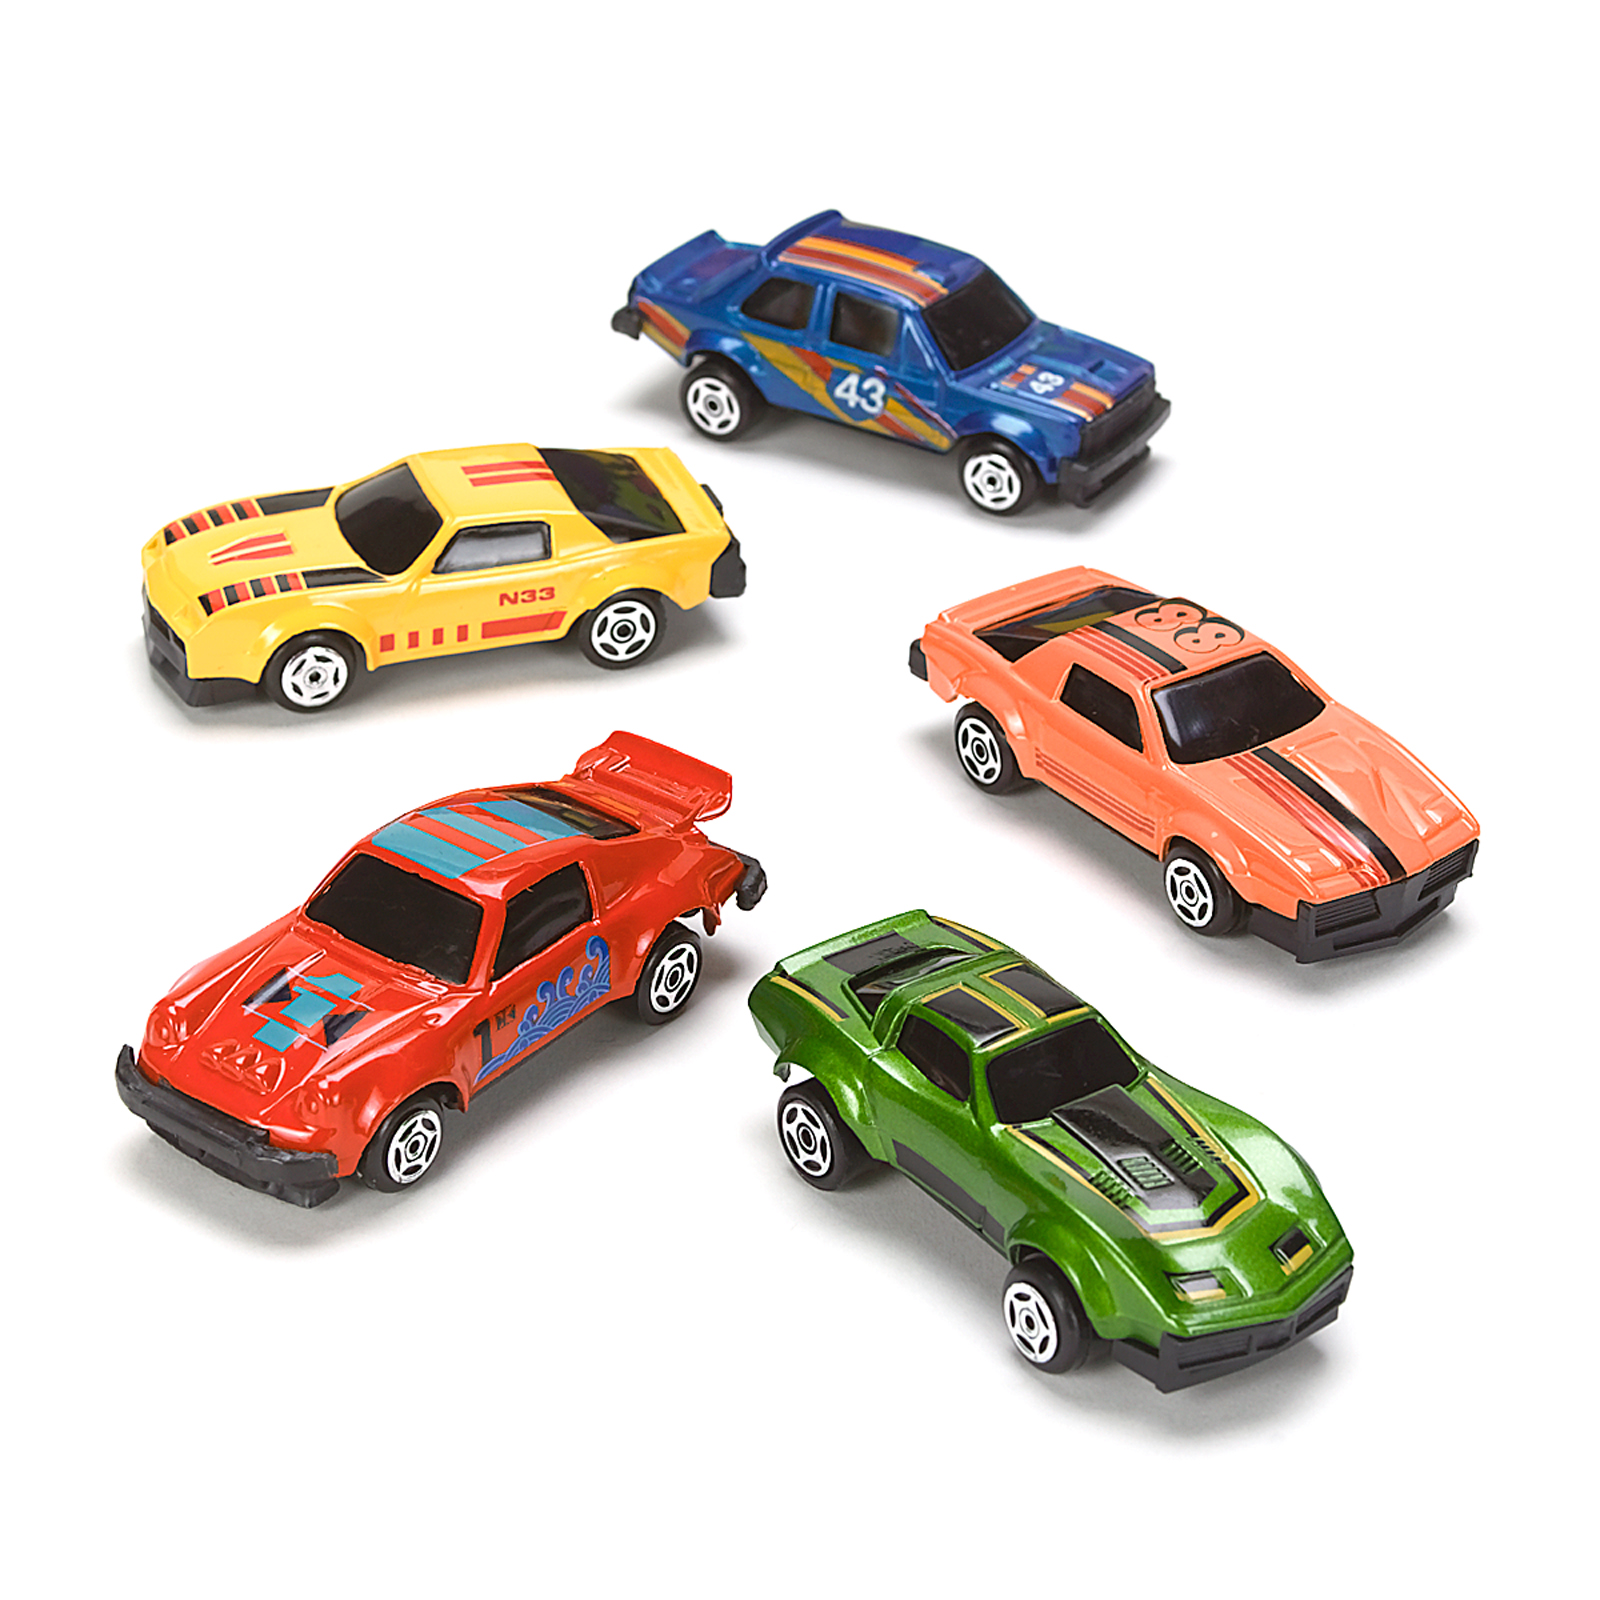 Toy Cars For Toys : Chic geek diary noah s summer favourites